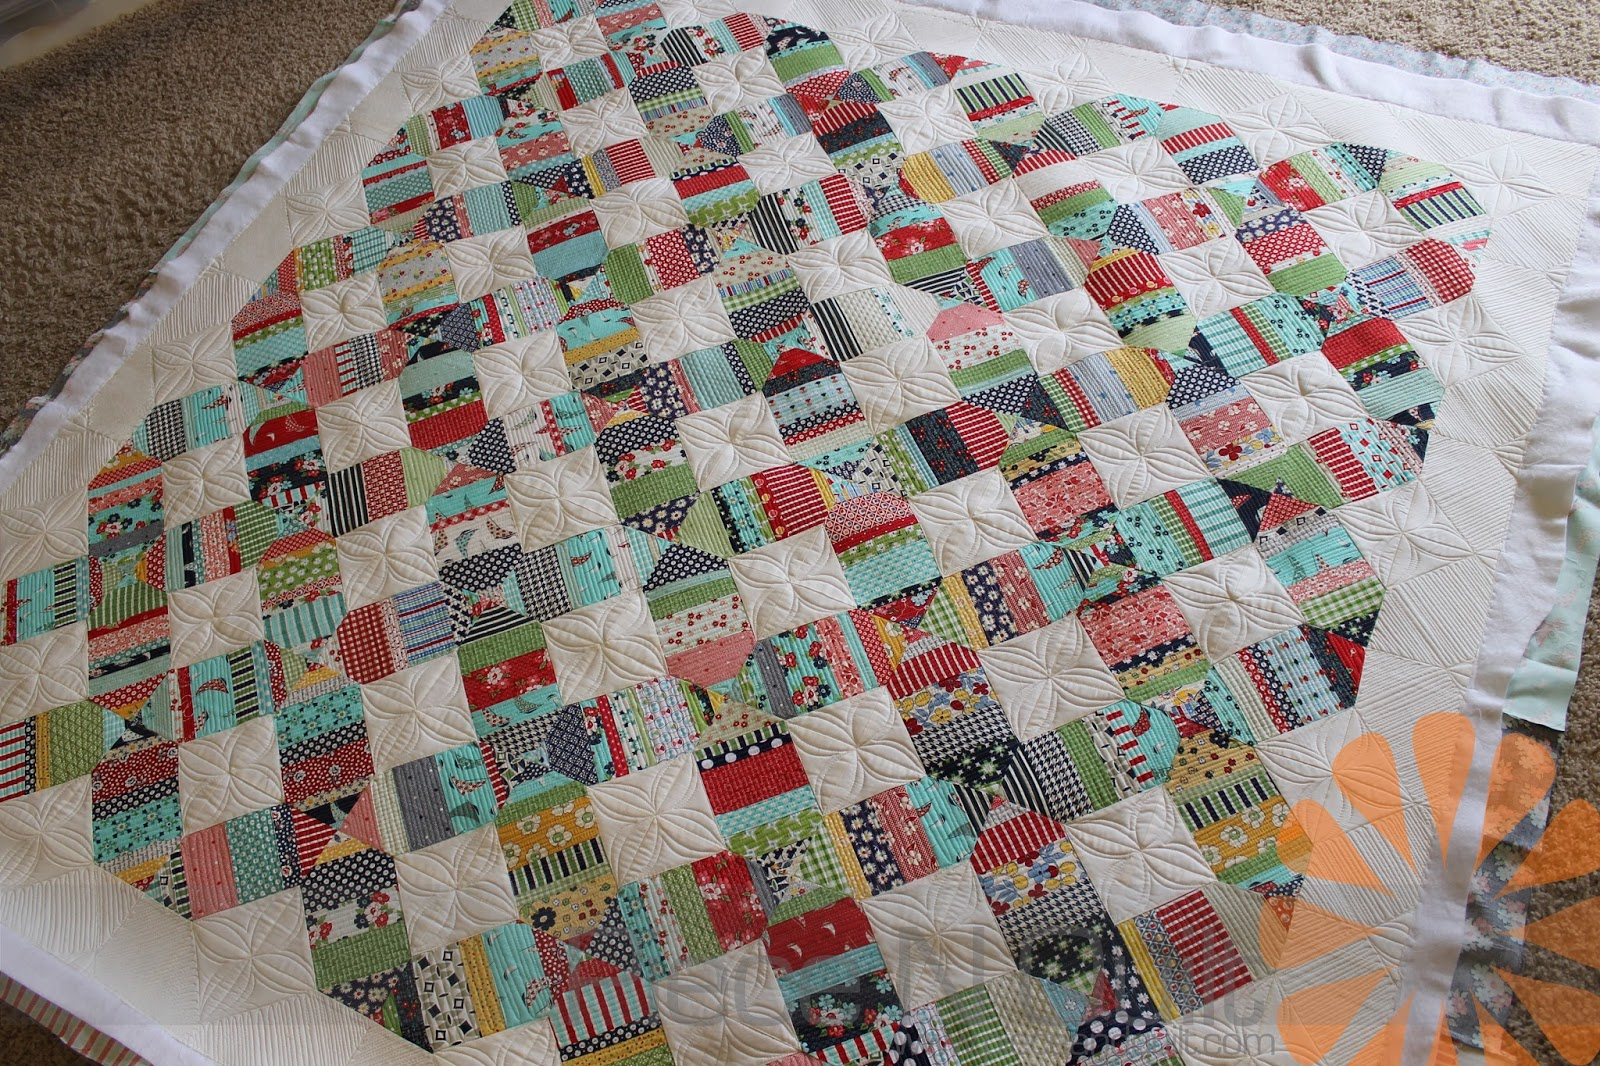 Ideas For Quilting Borders : Piece N Quilt: Custom Machine Quilting - A Fun Border Idea!